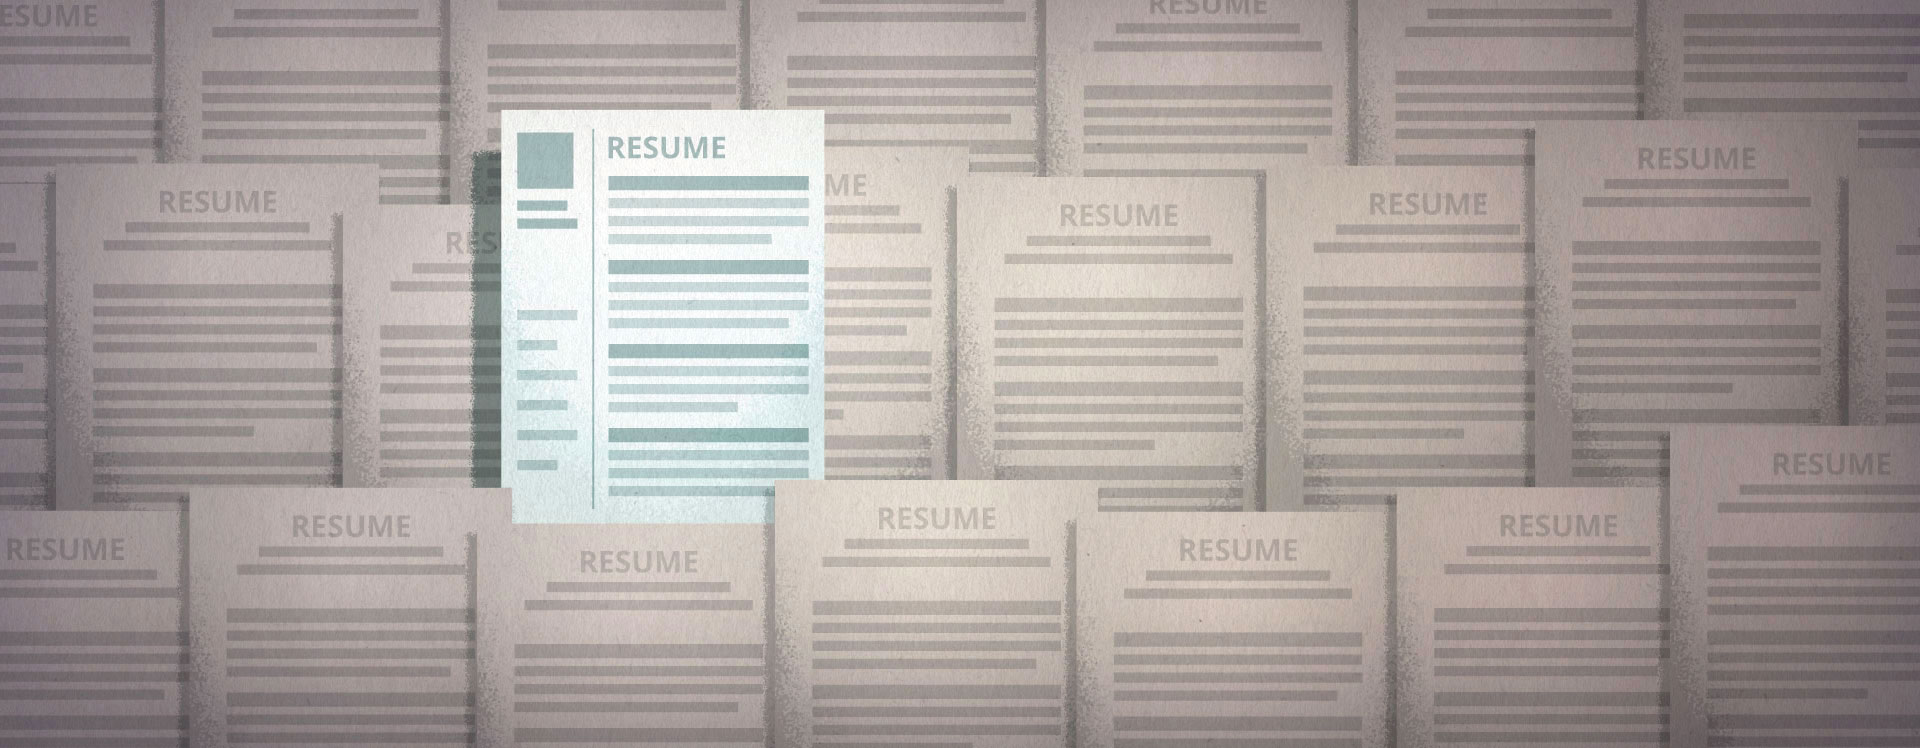 Health Information Resume Tips  How To Make A Cover Resume